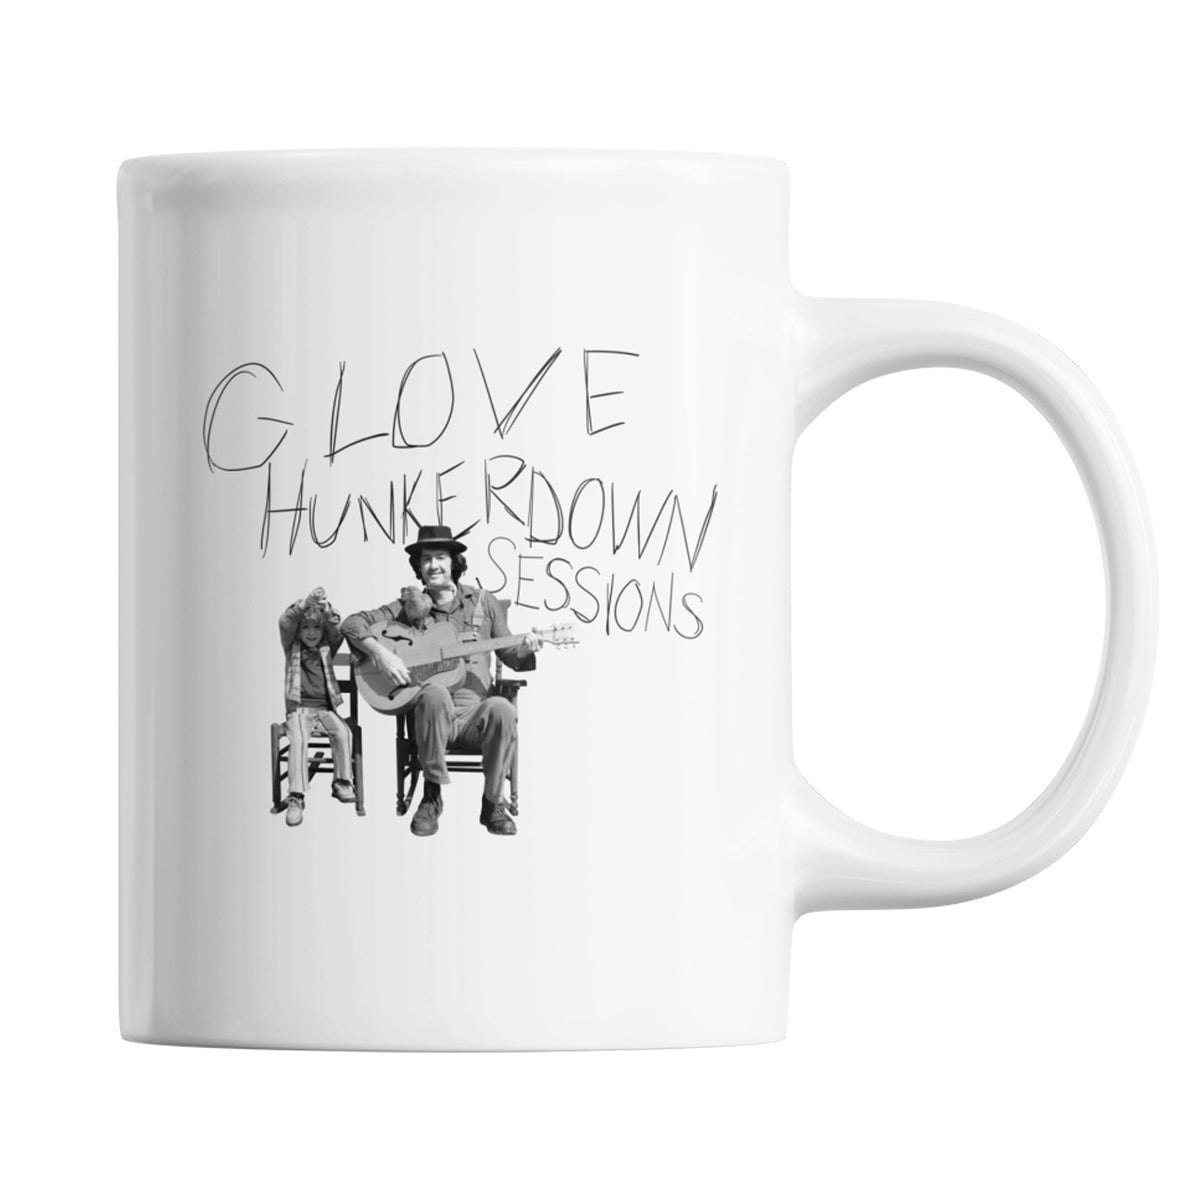 G. Love Hunkerdown Sessions We Support PA Coffee Mug